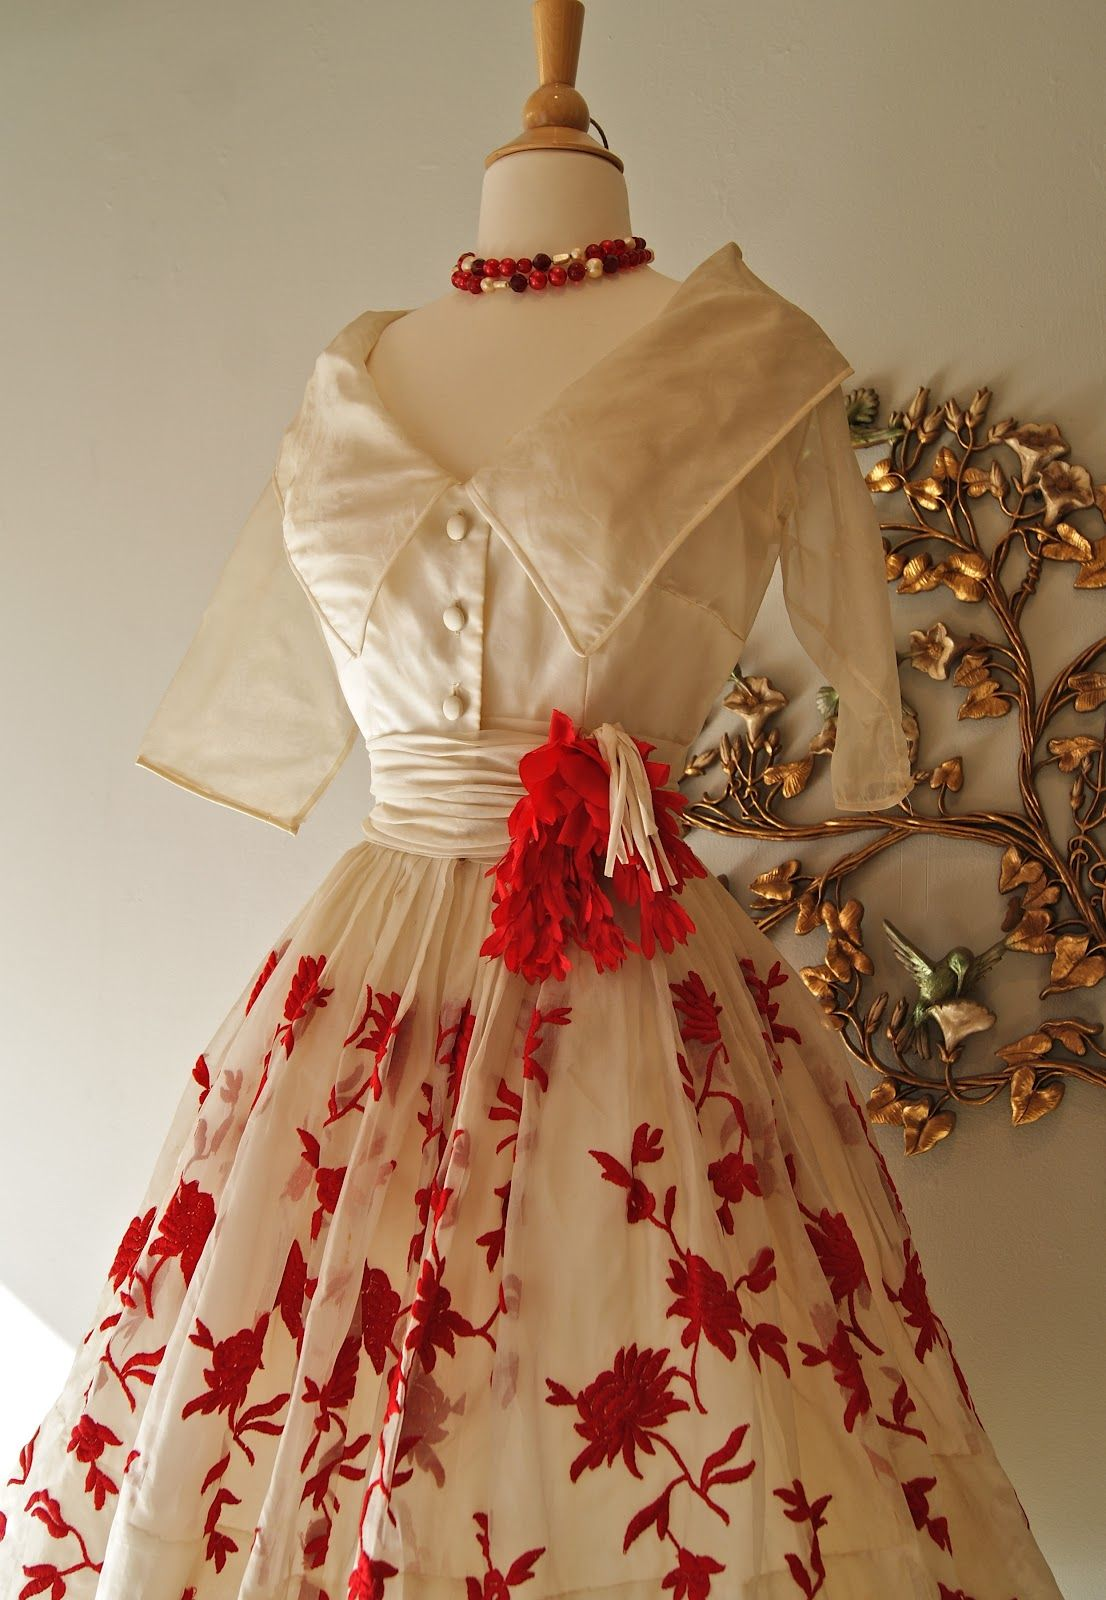 Us embroidered red flowers on offwhite silk organza dress by